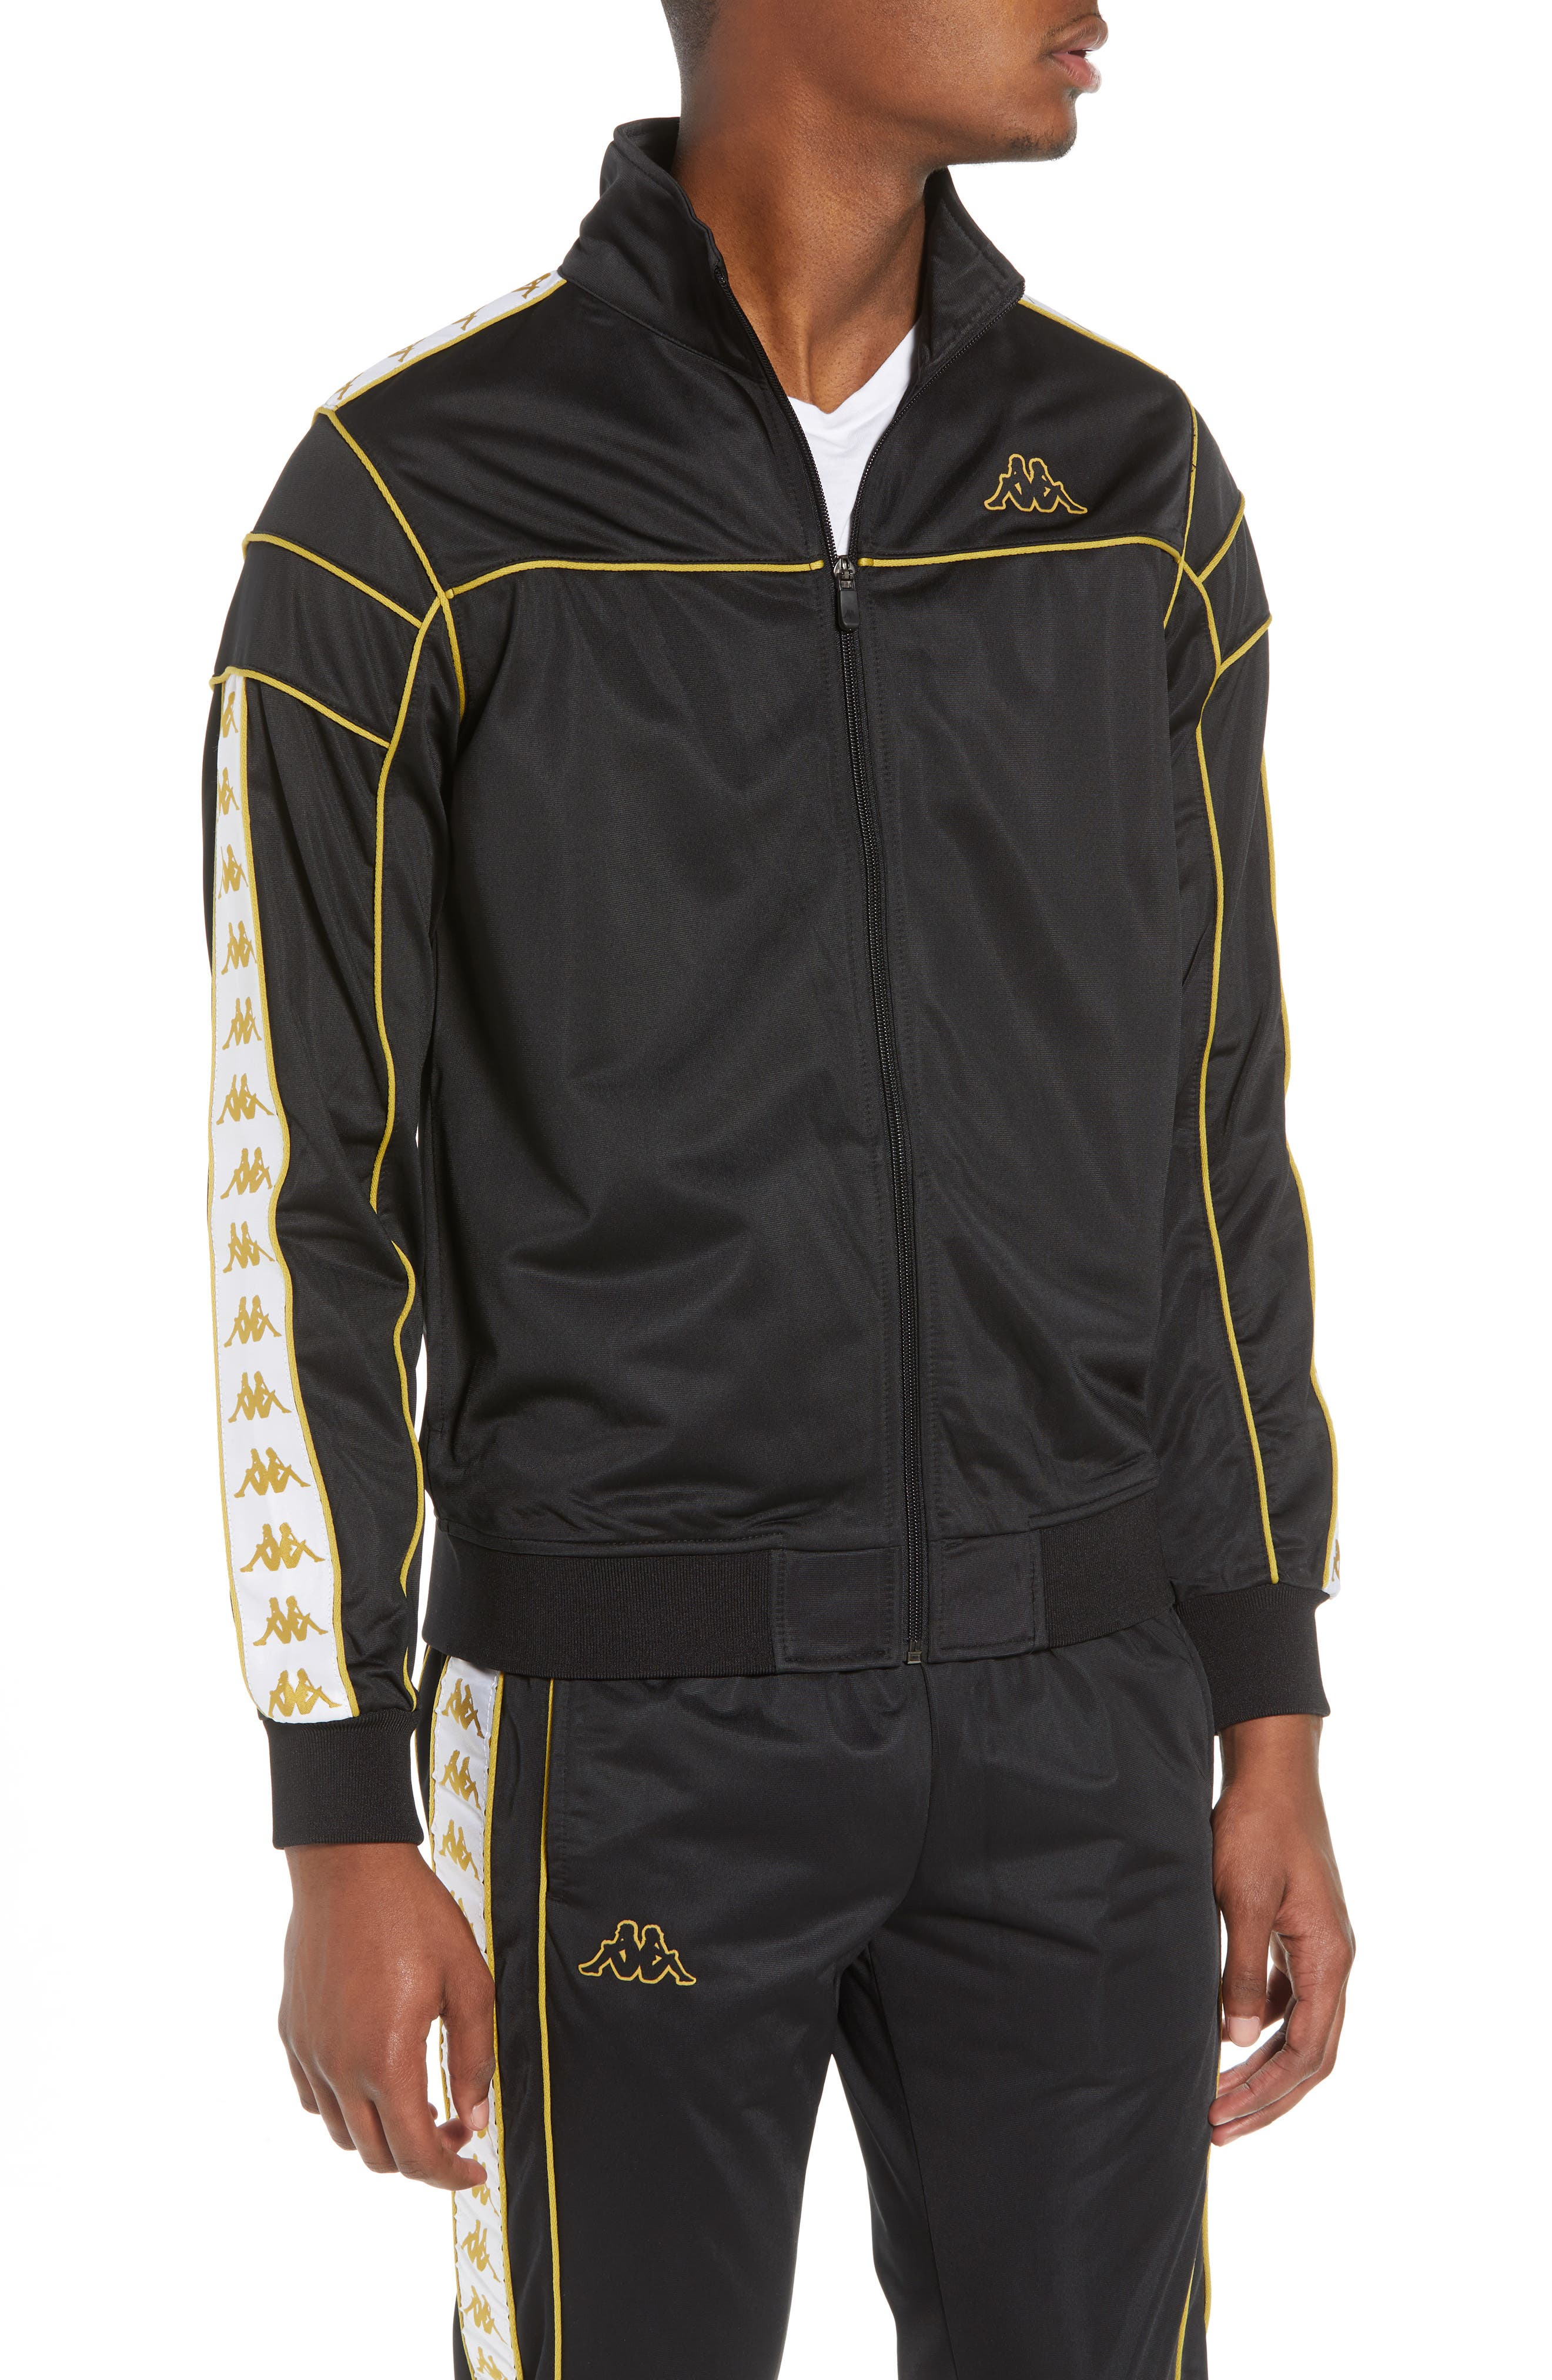 Racing Track Jacket,                             Main thumbnail 1, color,                             005